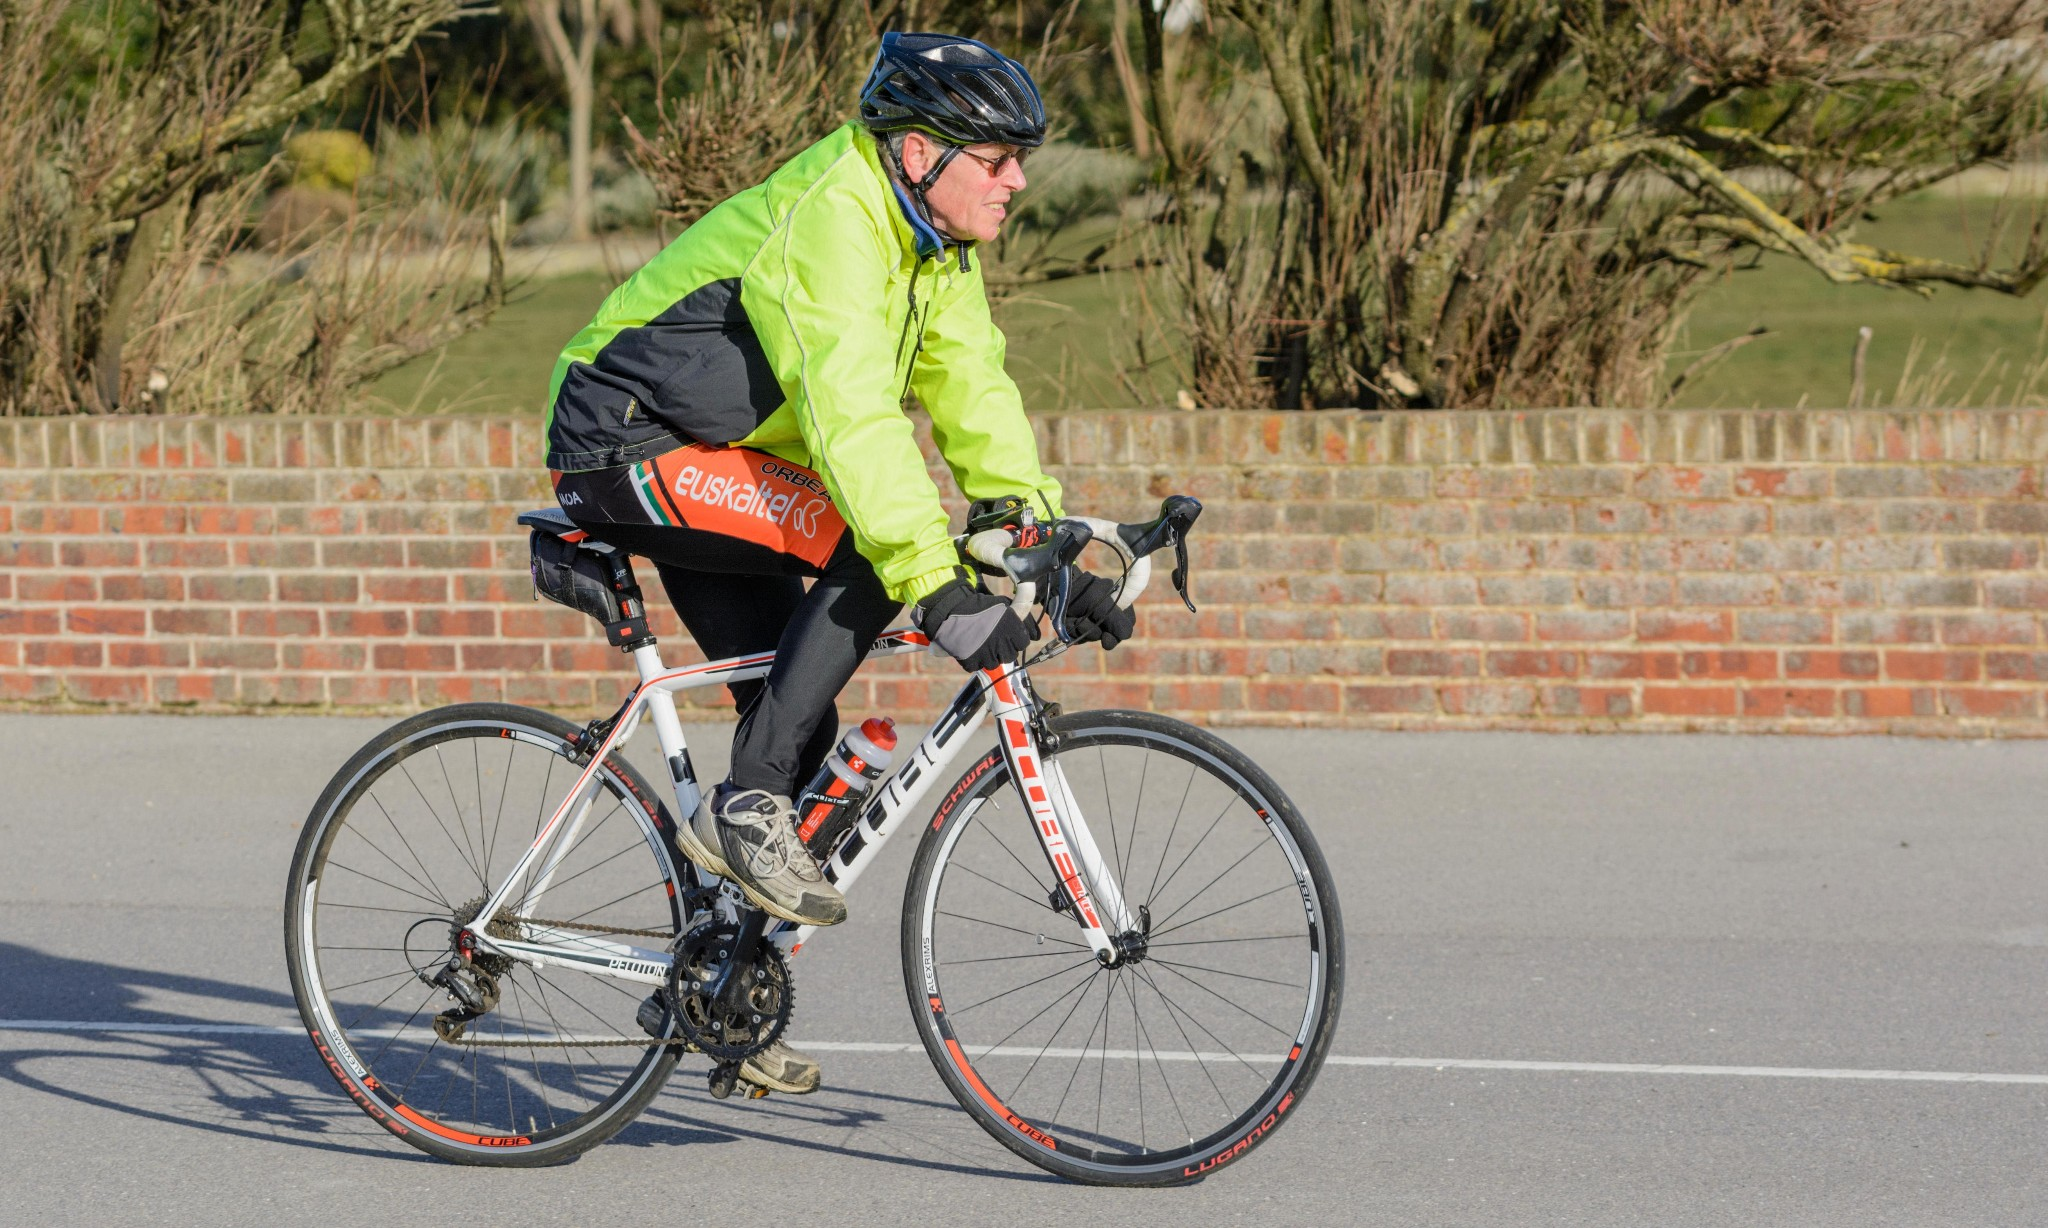 Cycling keeps your immune system young, study finds